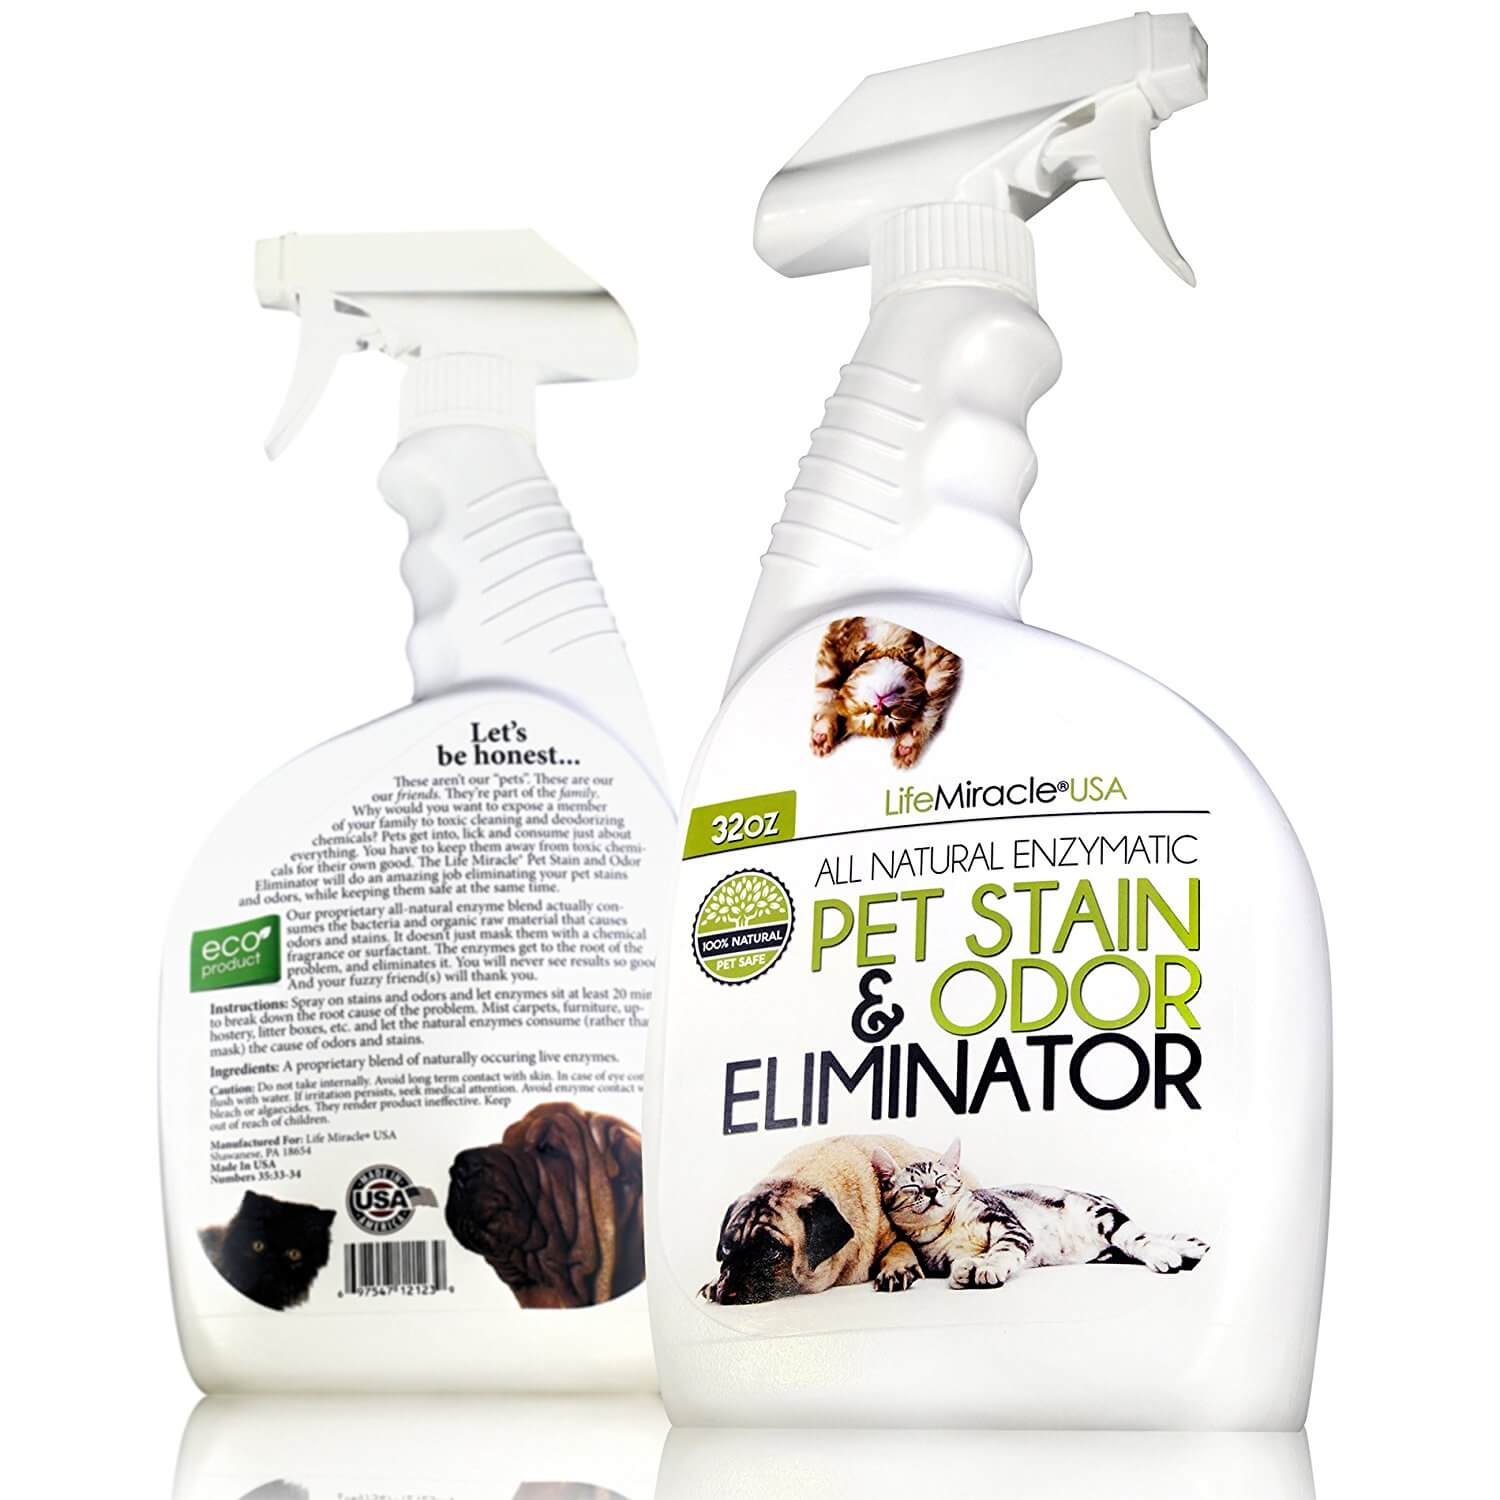 Pet Stain And Odor Eliminator Life Miracle Health Products Whole Distributor Liquid Vitamin Collagen Protein Nano Towels